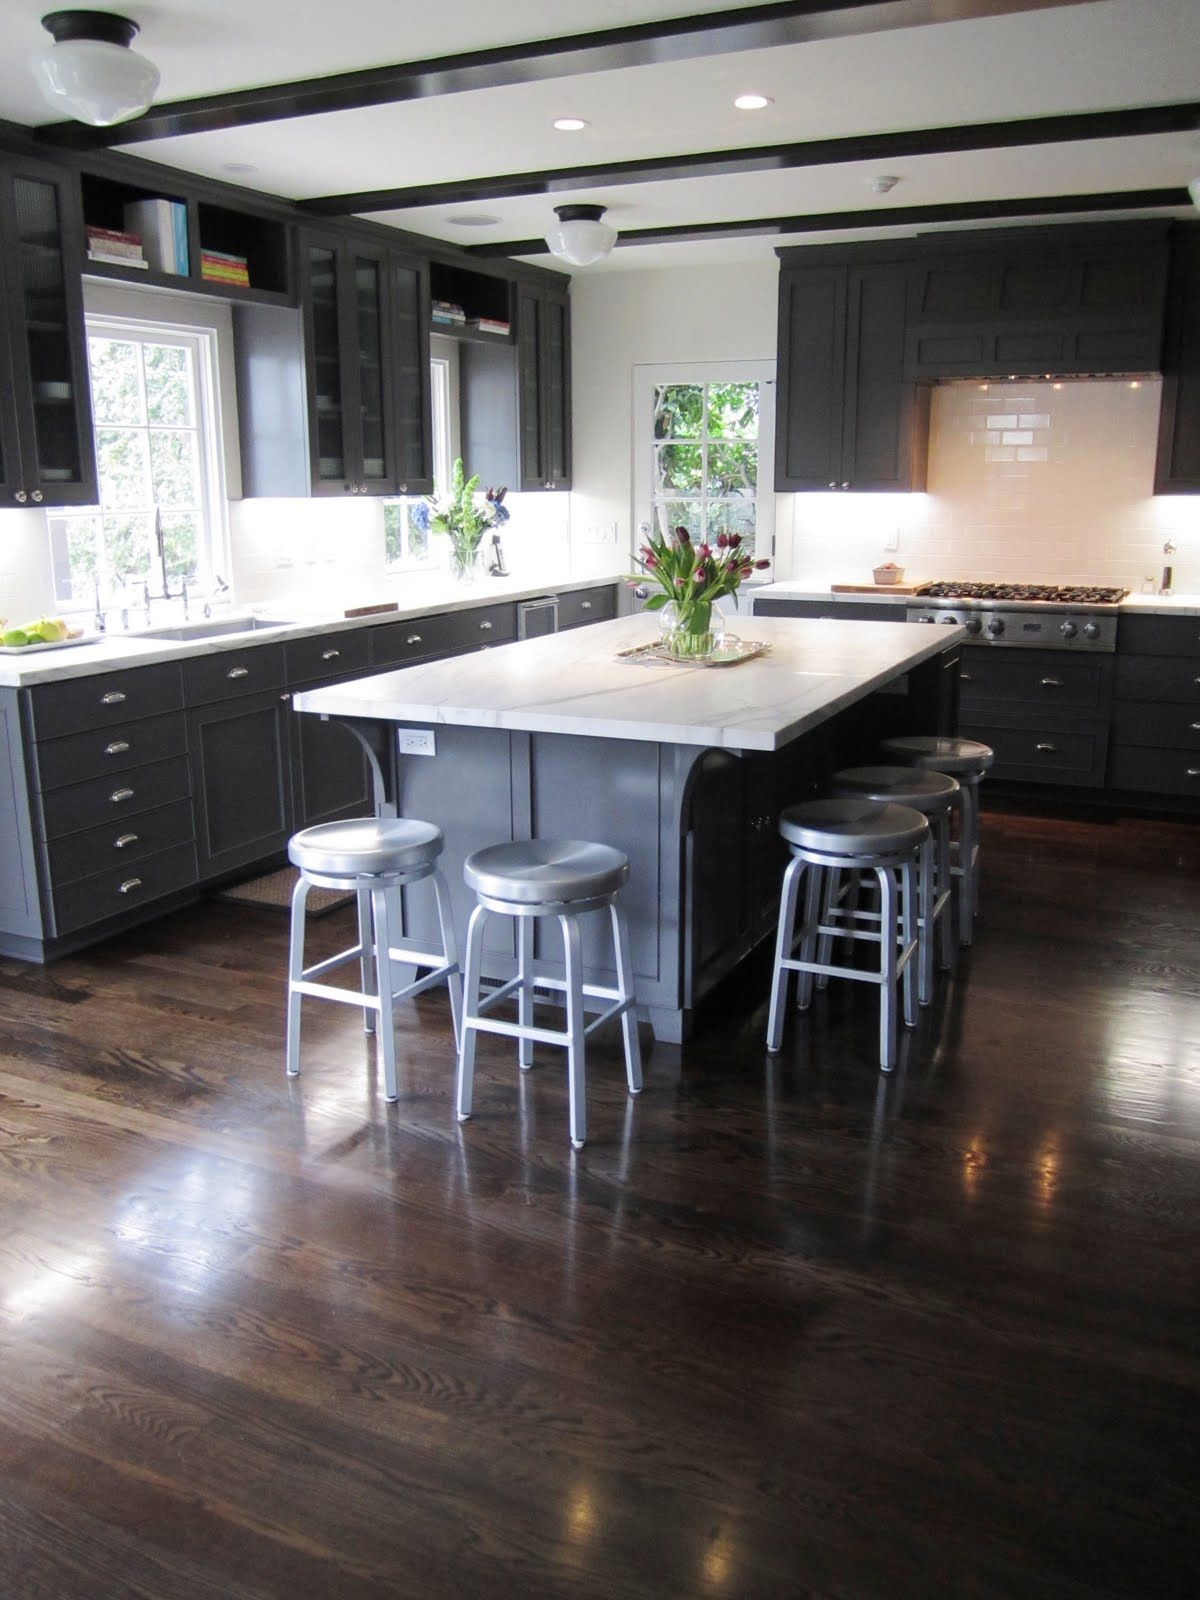 EXCLUSIVE: KITCHEN COUTURE - AN ELEGANT CALIFORNIA CLASSIC ... on Maple Kitchen Cabinets With Dark Wood Floors Dark Countertops  id=19746